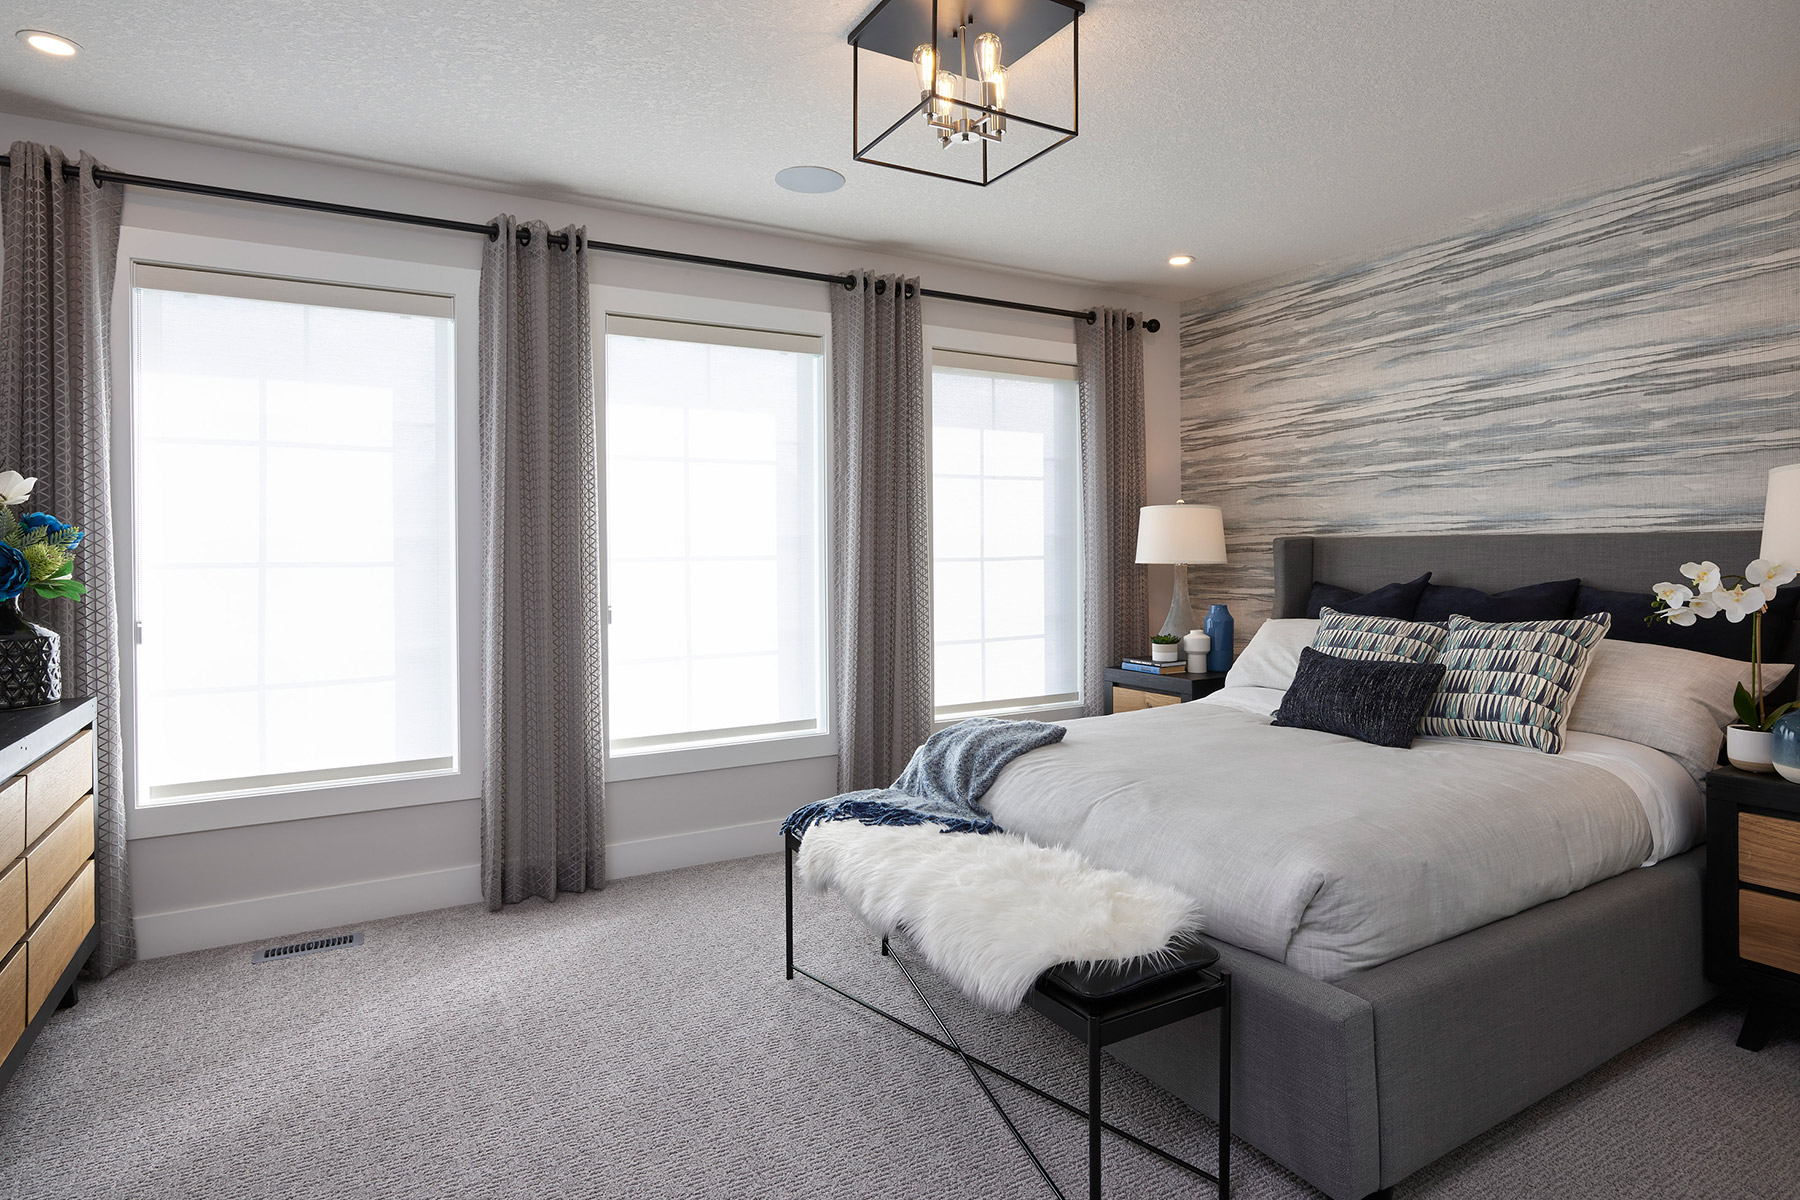 Monarch Plan Bedroom at Yorkville in Calgary Alberta by Mattamy Homes